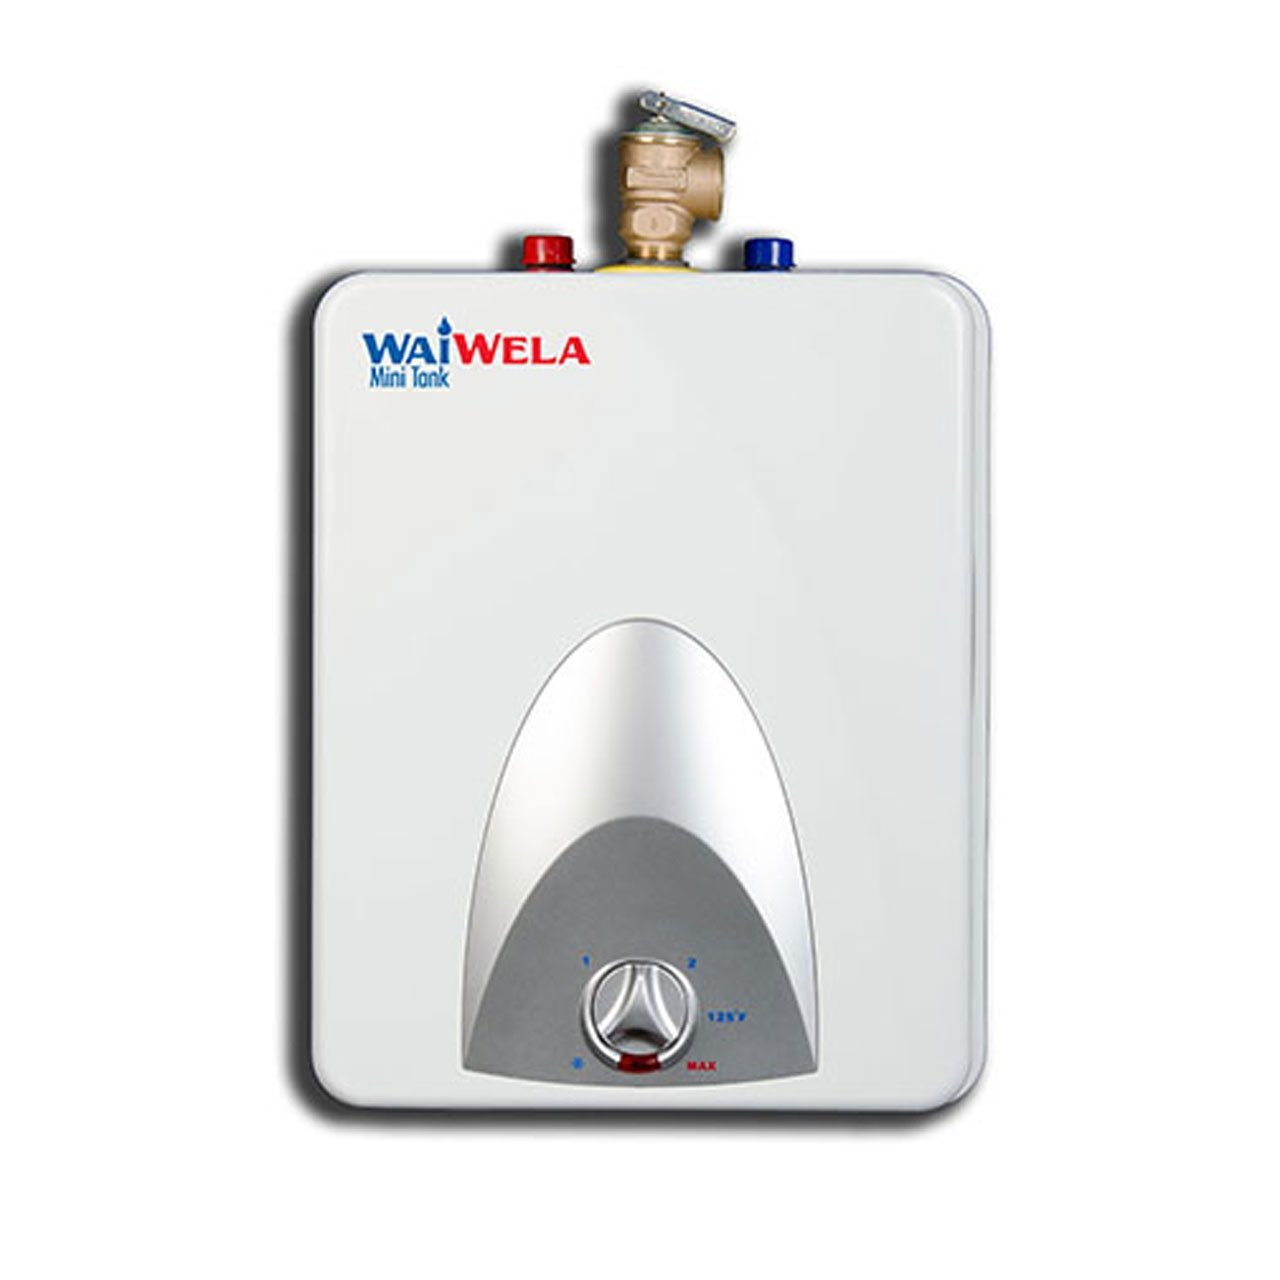 Rheem Hot Water Heater >> Electric Water Heater List & Reviews | waterheaterlist.com